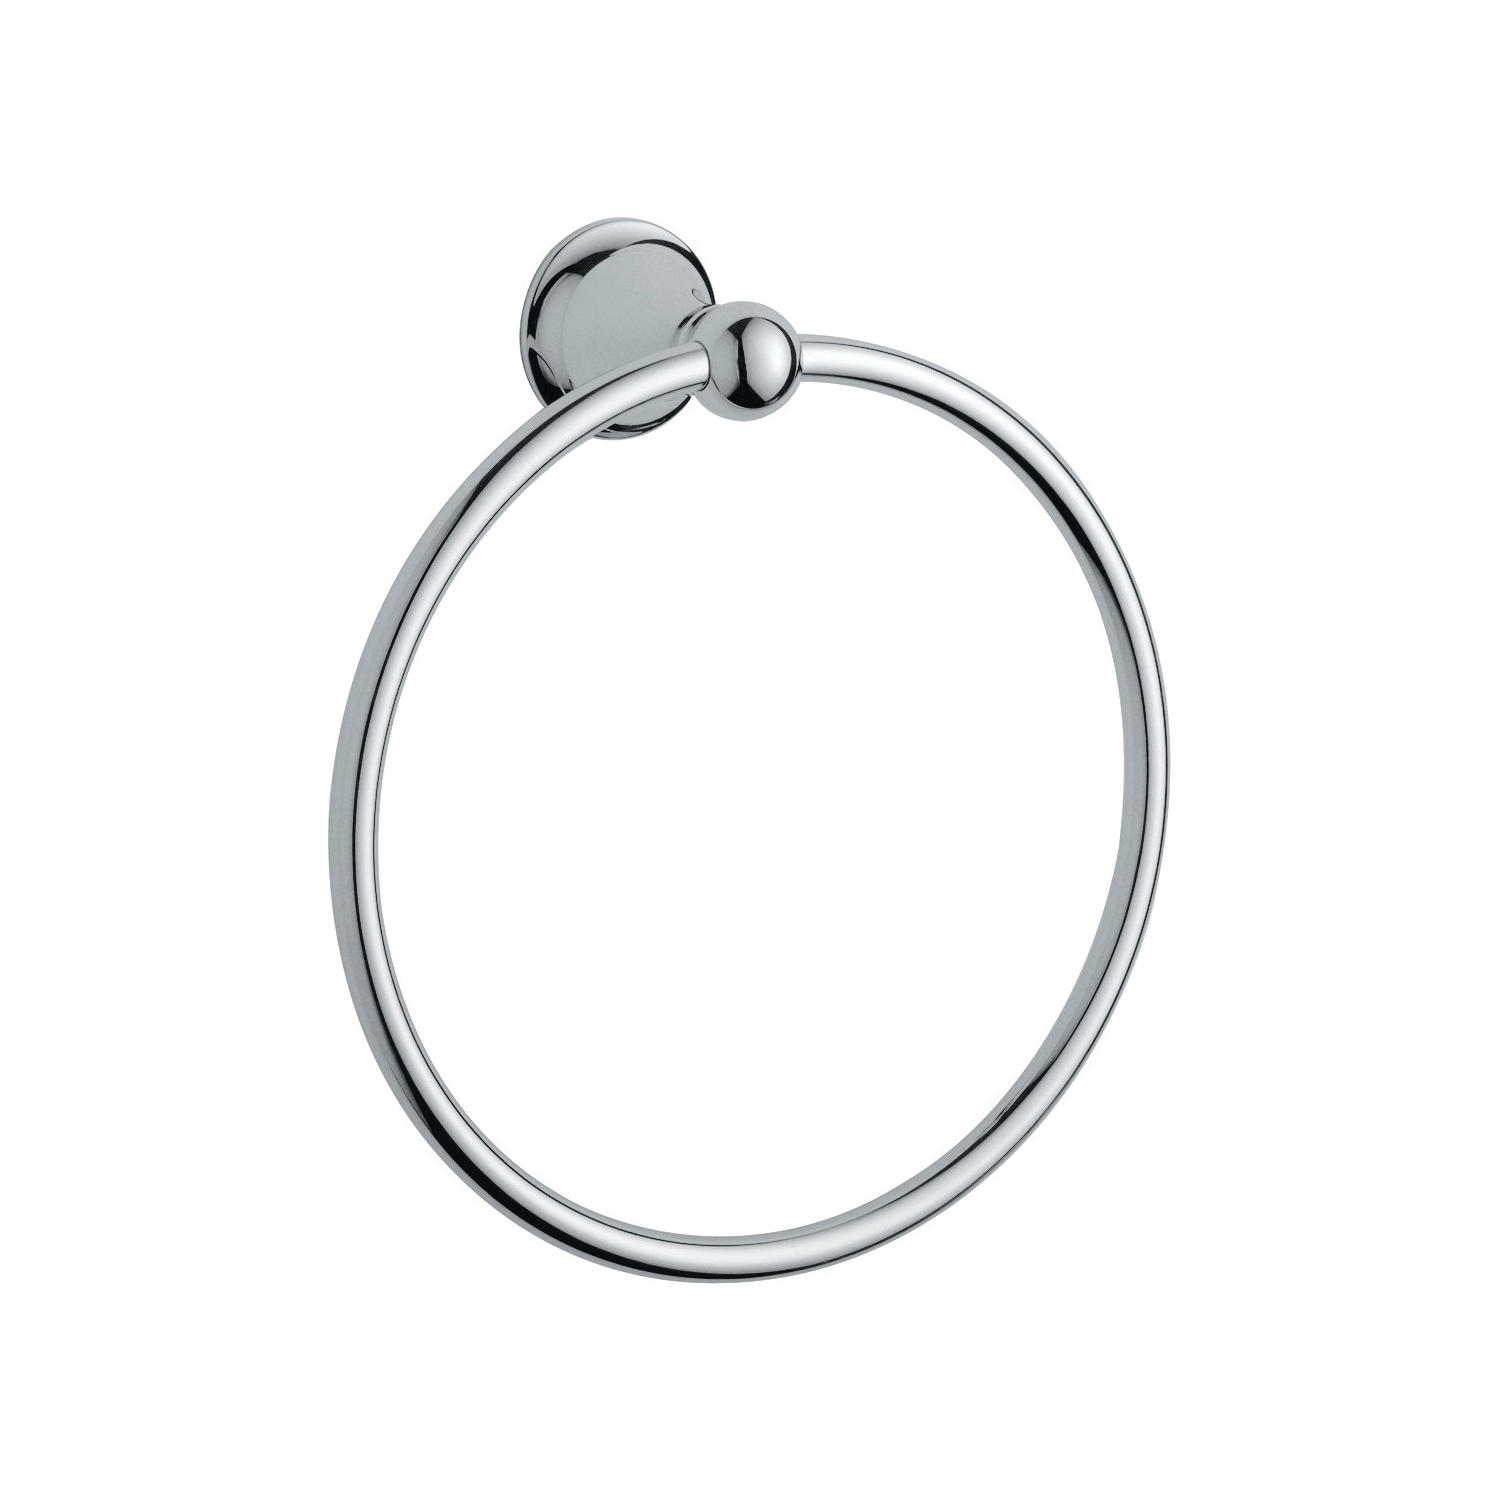 GROHE 40158000 Seabury Towel Ring, 7-7/8 in Dia Ring, 2-11/16 in OAD, Metal, Import